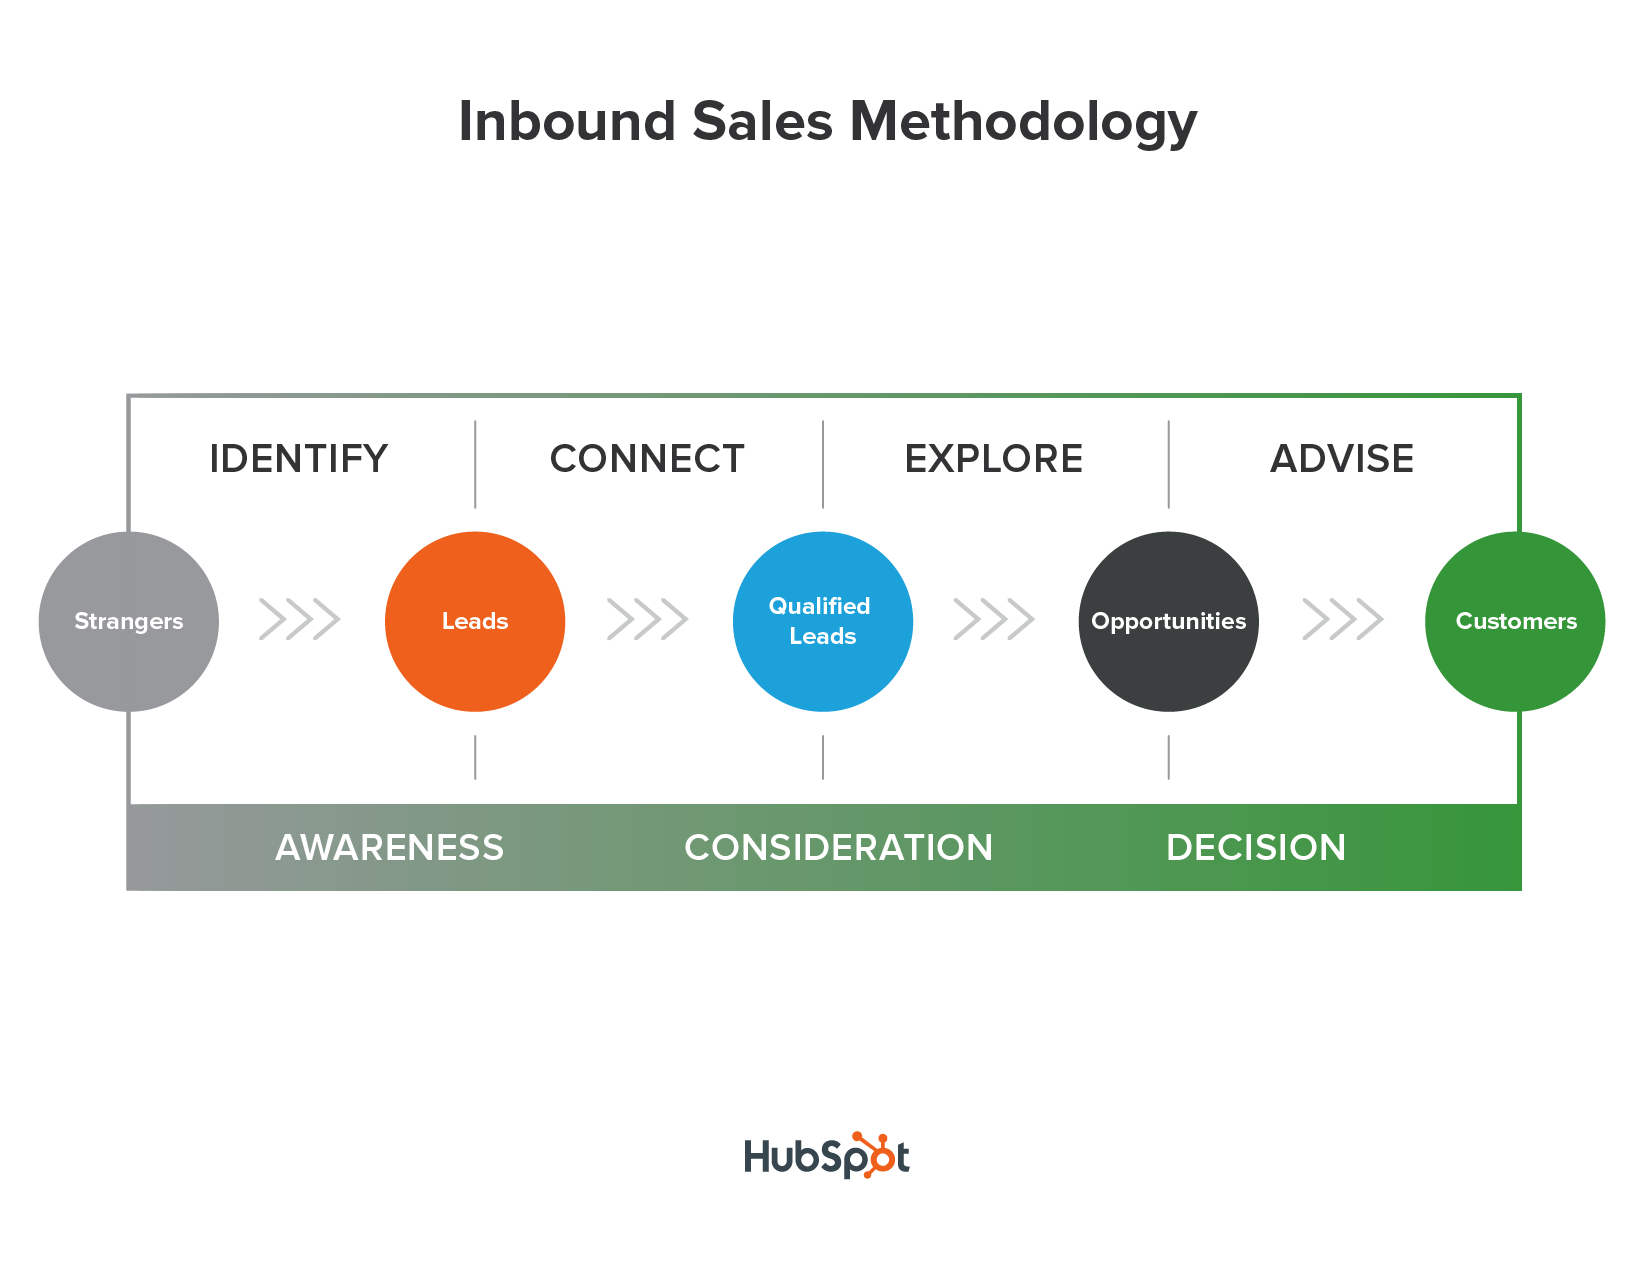 Hubspot_sales_methodology-01.png